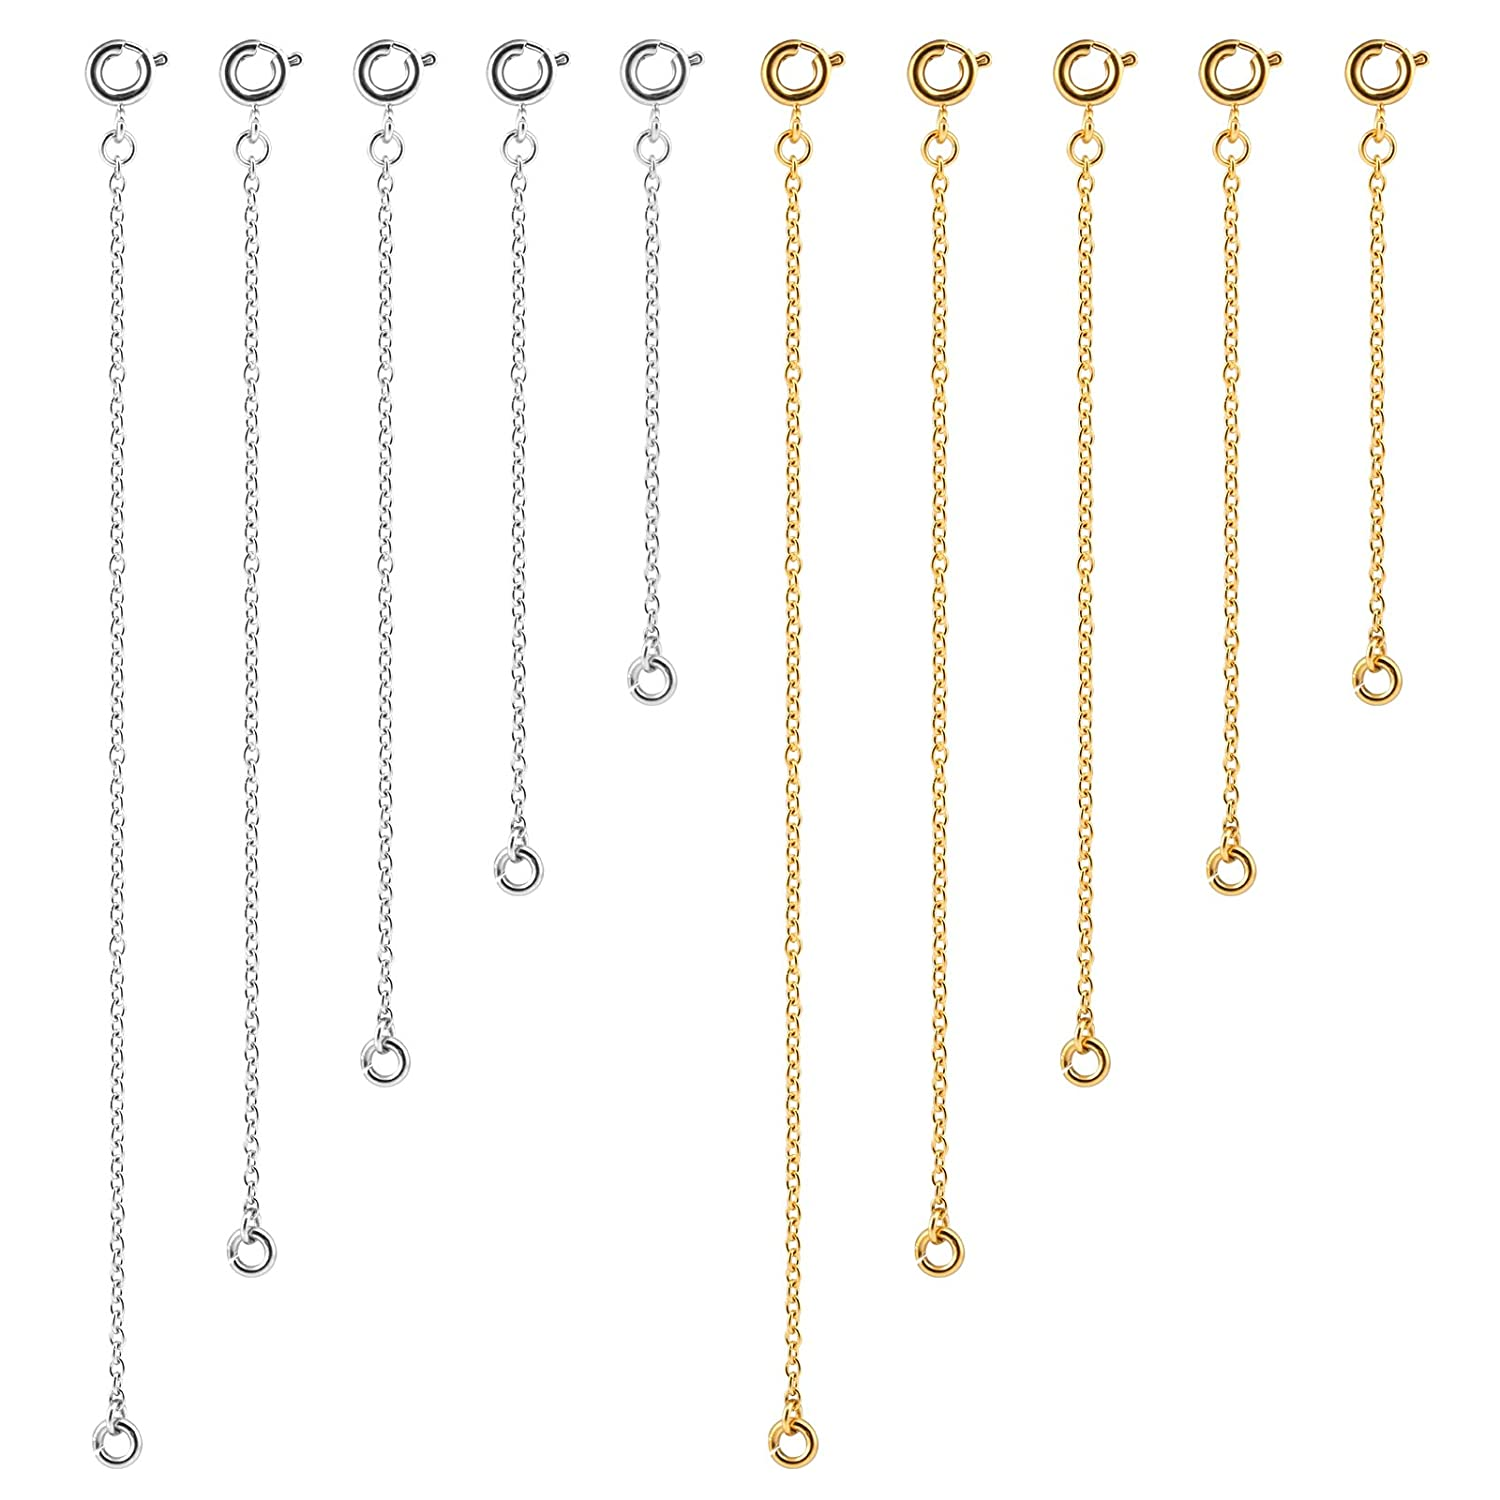 Naler 10pcs Extender Chains, 2/3/4/5/6 inches Stainless Steel Bracelet Necklace Extender Chain with Slingshot Buckle Safety Chain Jewellery, Gold Plated/Silver Plated Naler162